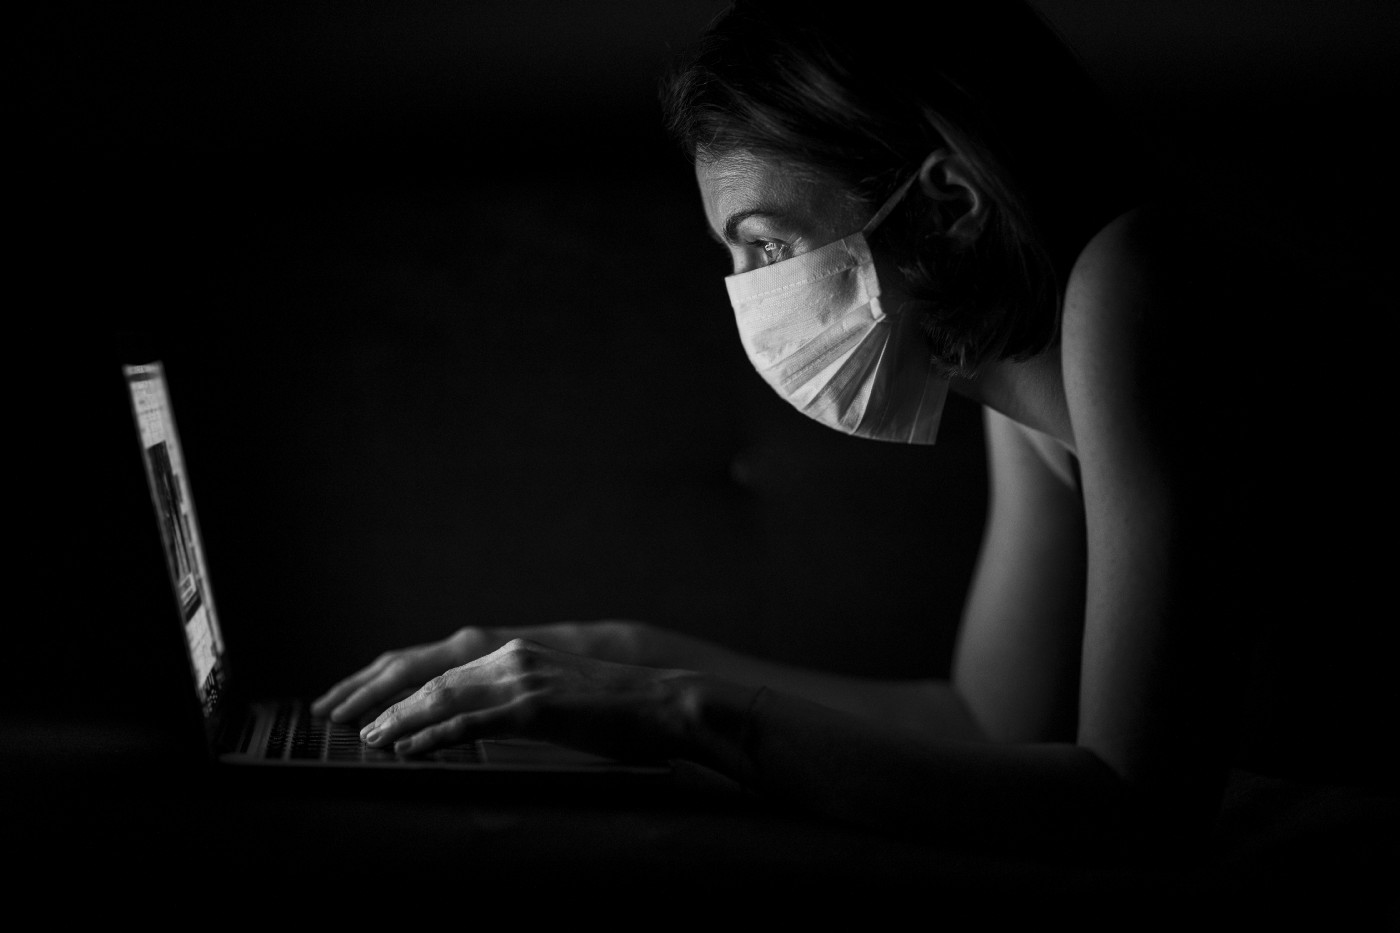 Masked girl working on her laptop